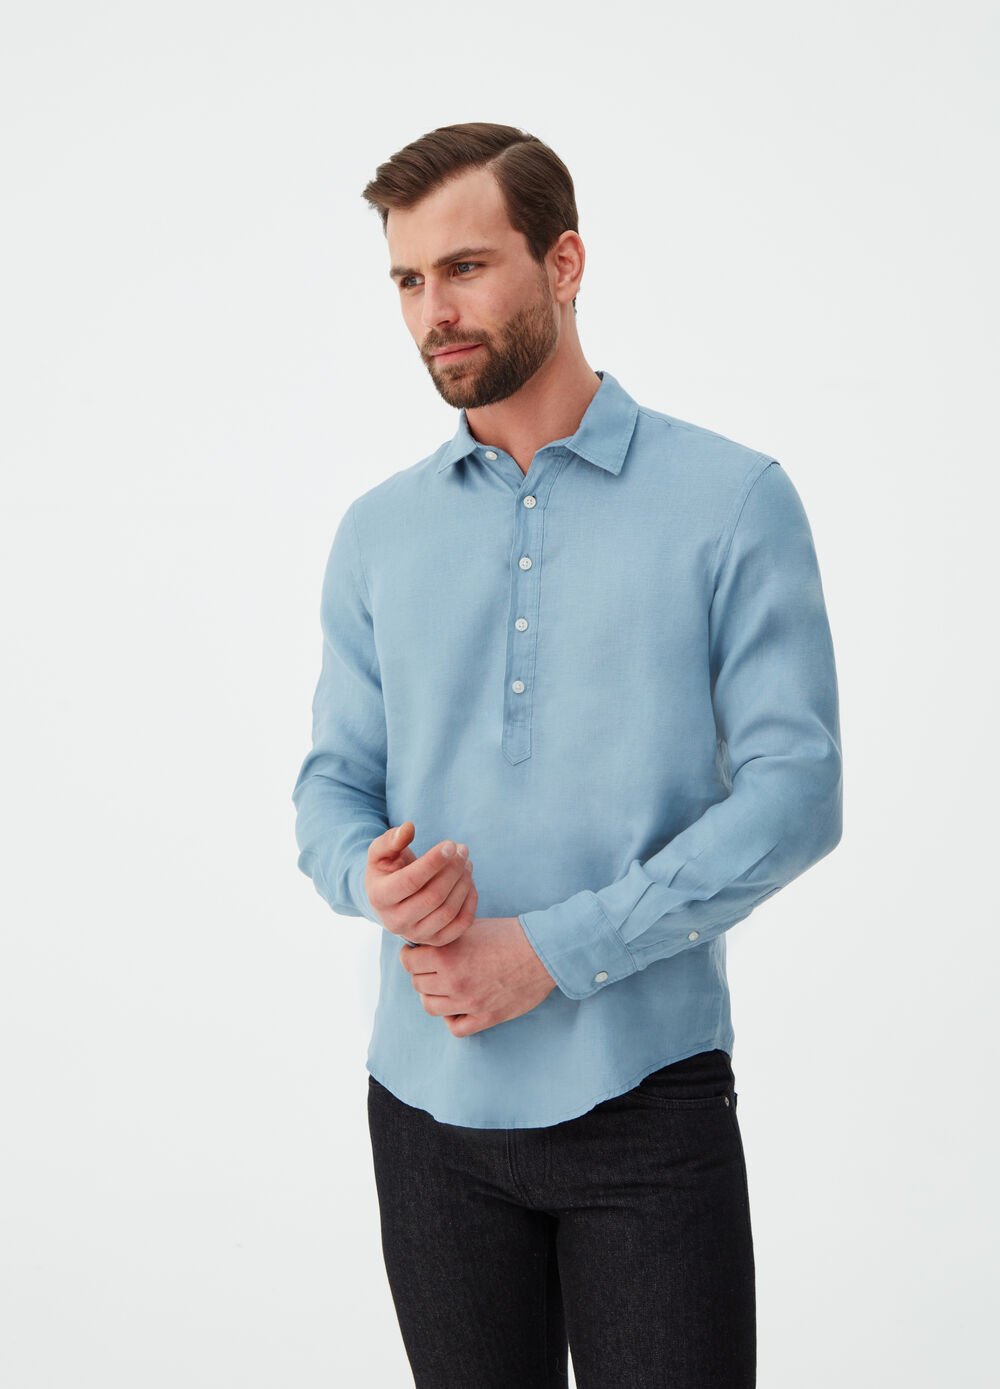 Regular-fit shirt in 100% linen with opening